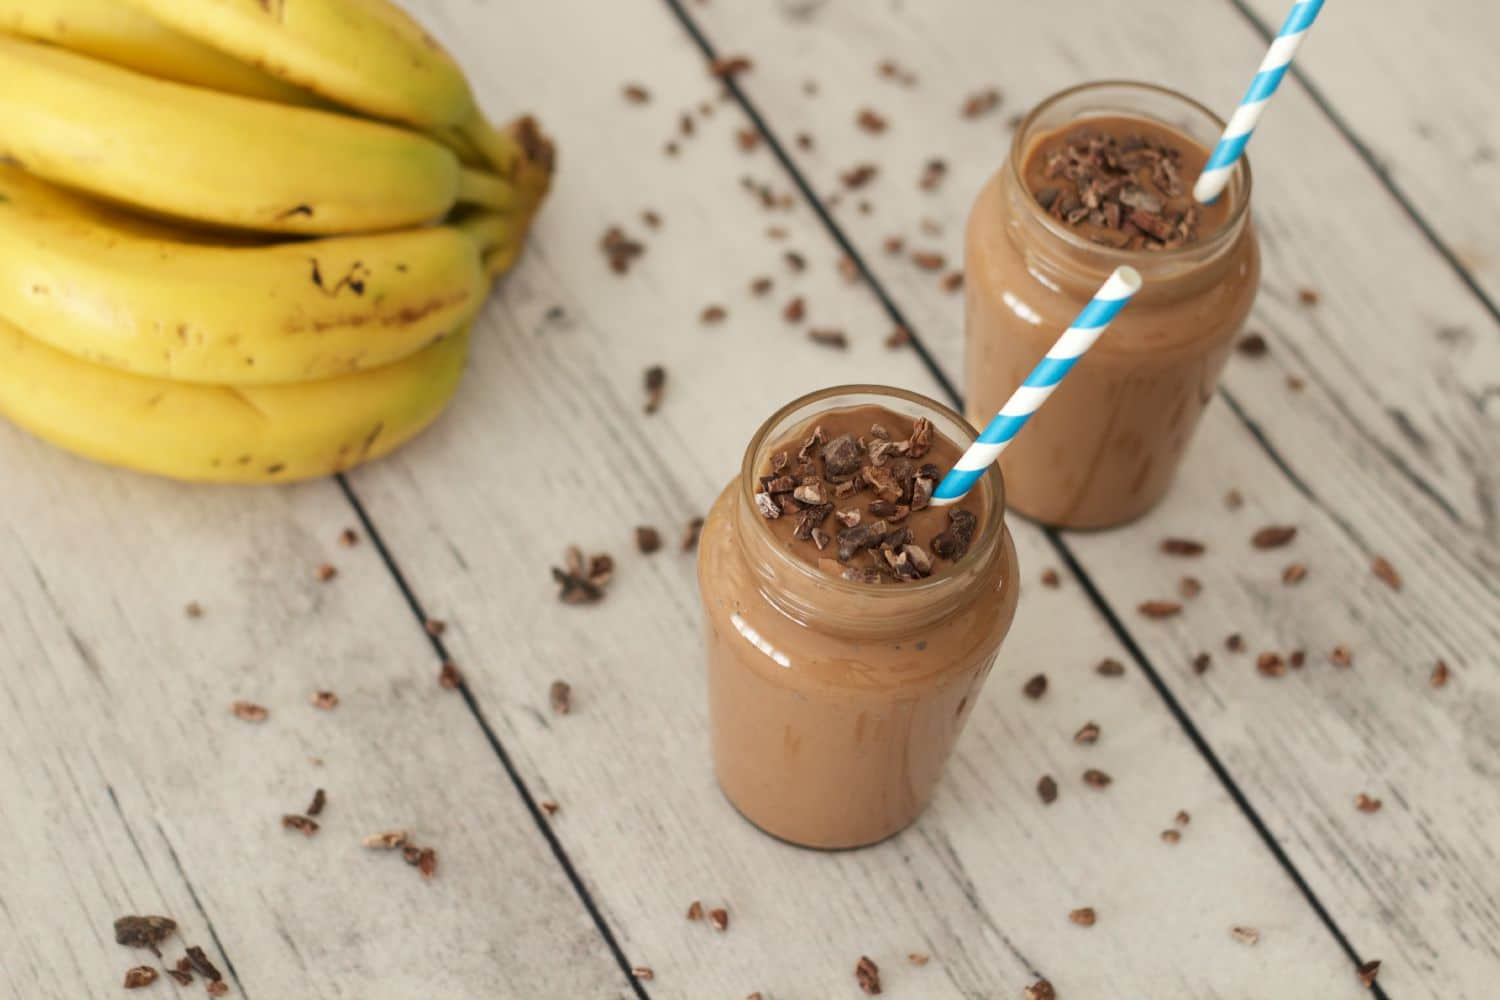 Rich, smooth and delicious Chocolate Peanut Butter Smoothie - ideal as an anytime snack or a breakfast power shake! #vegan #smoothie #dairy-free #gluten-free #lovingitvegan